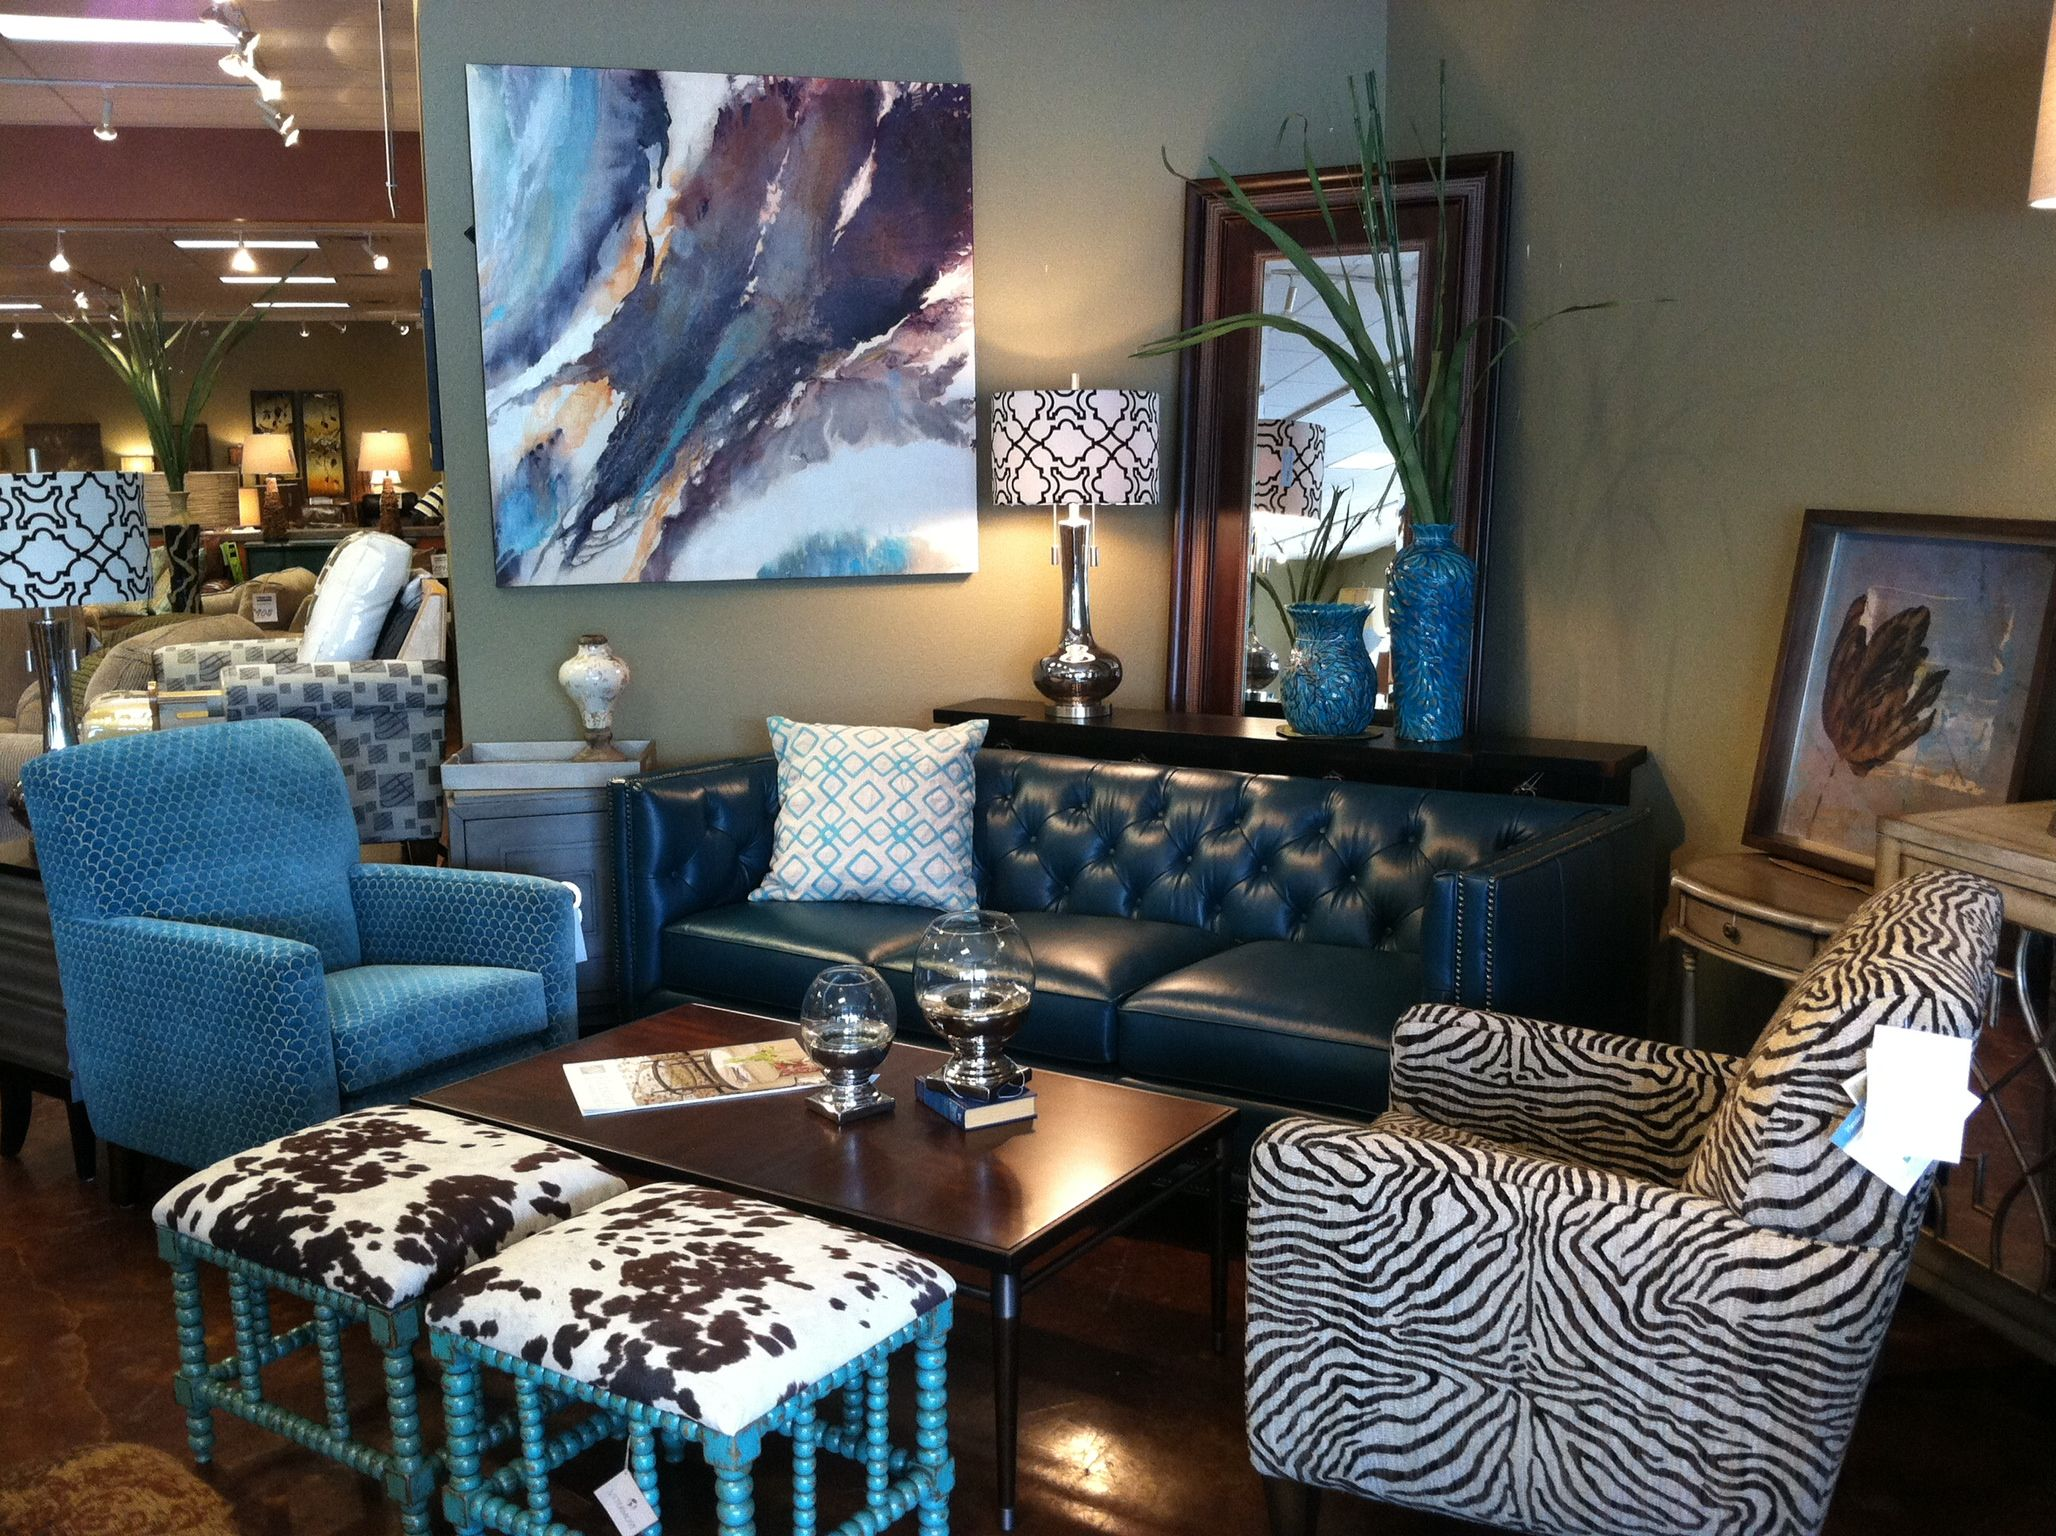 Flexsteel Teal Leather Sofa with Flexsteel accent chairs available